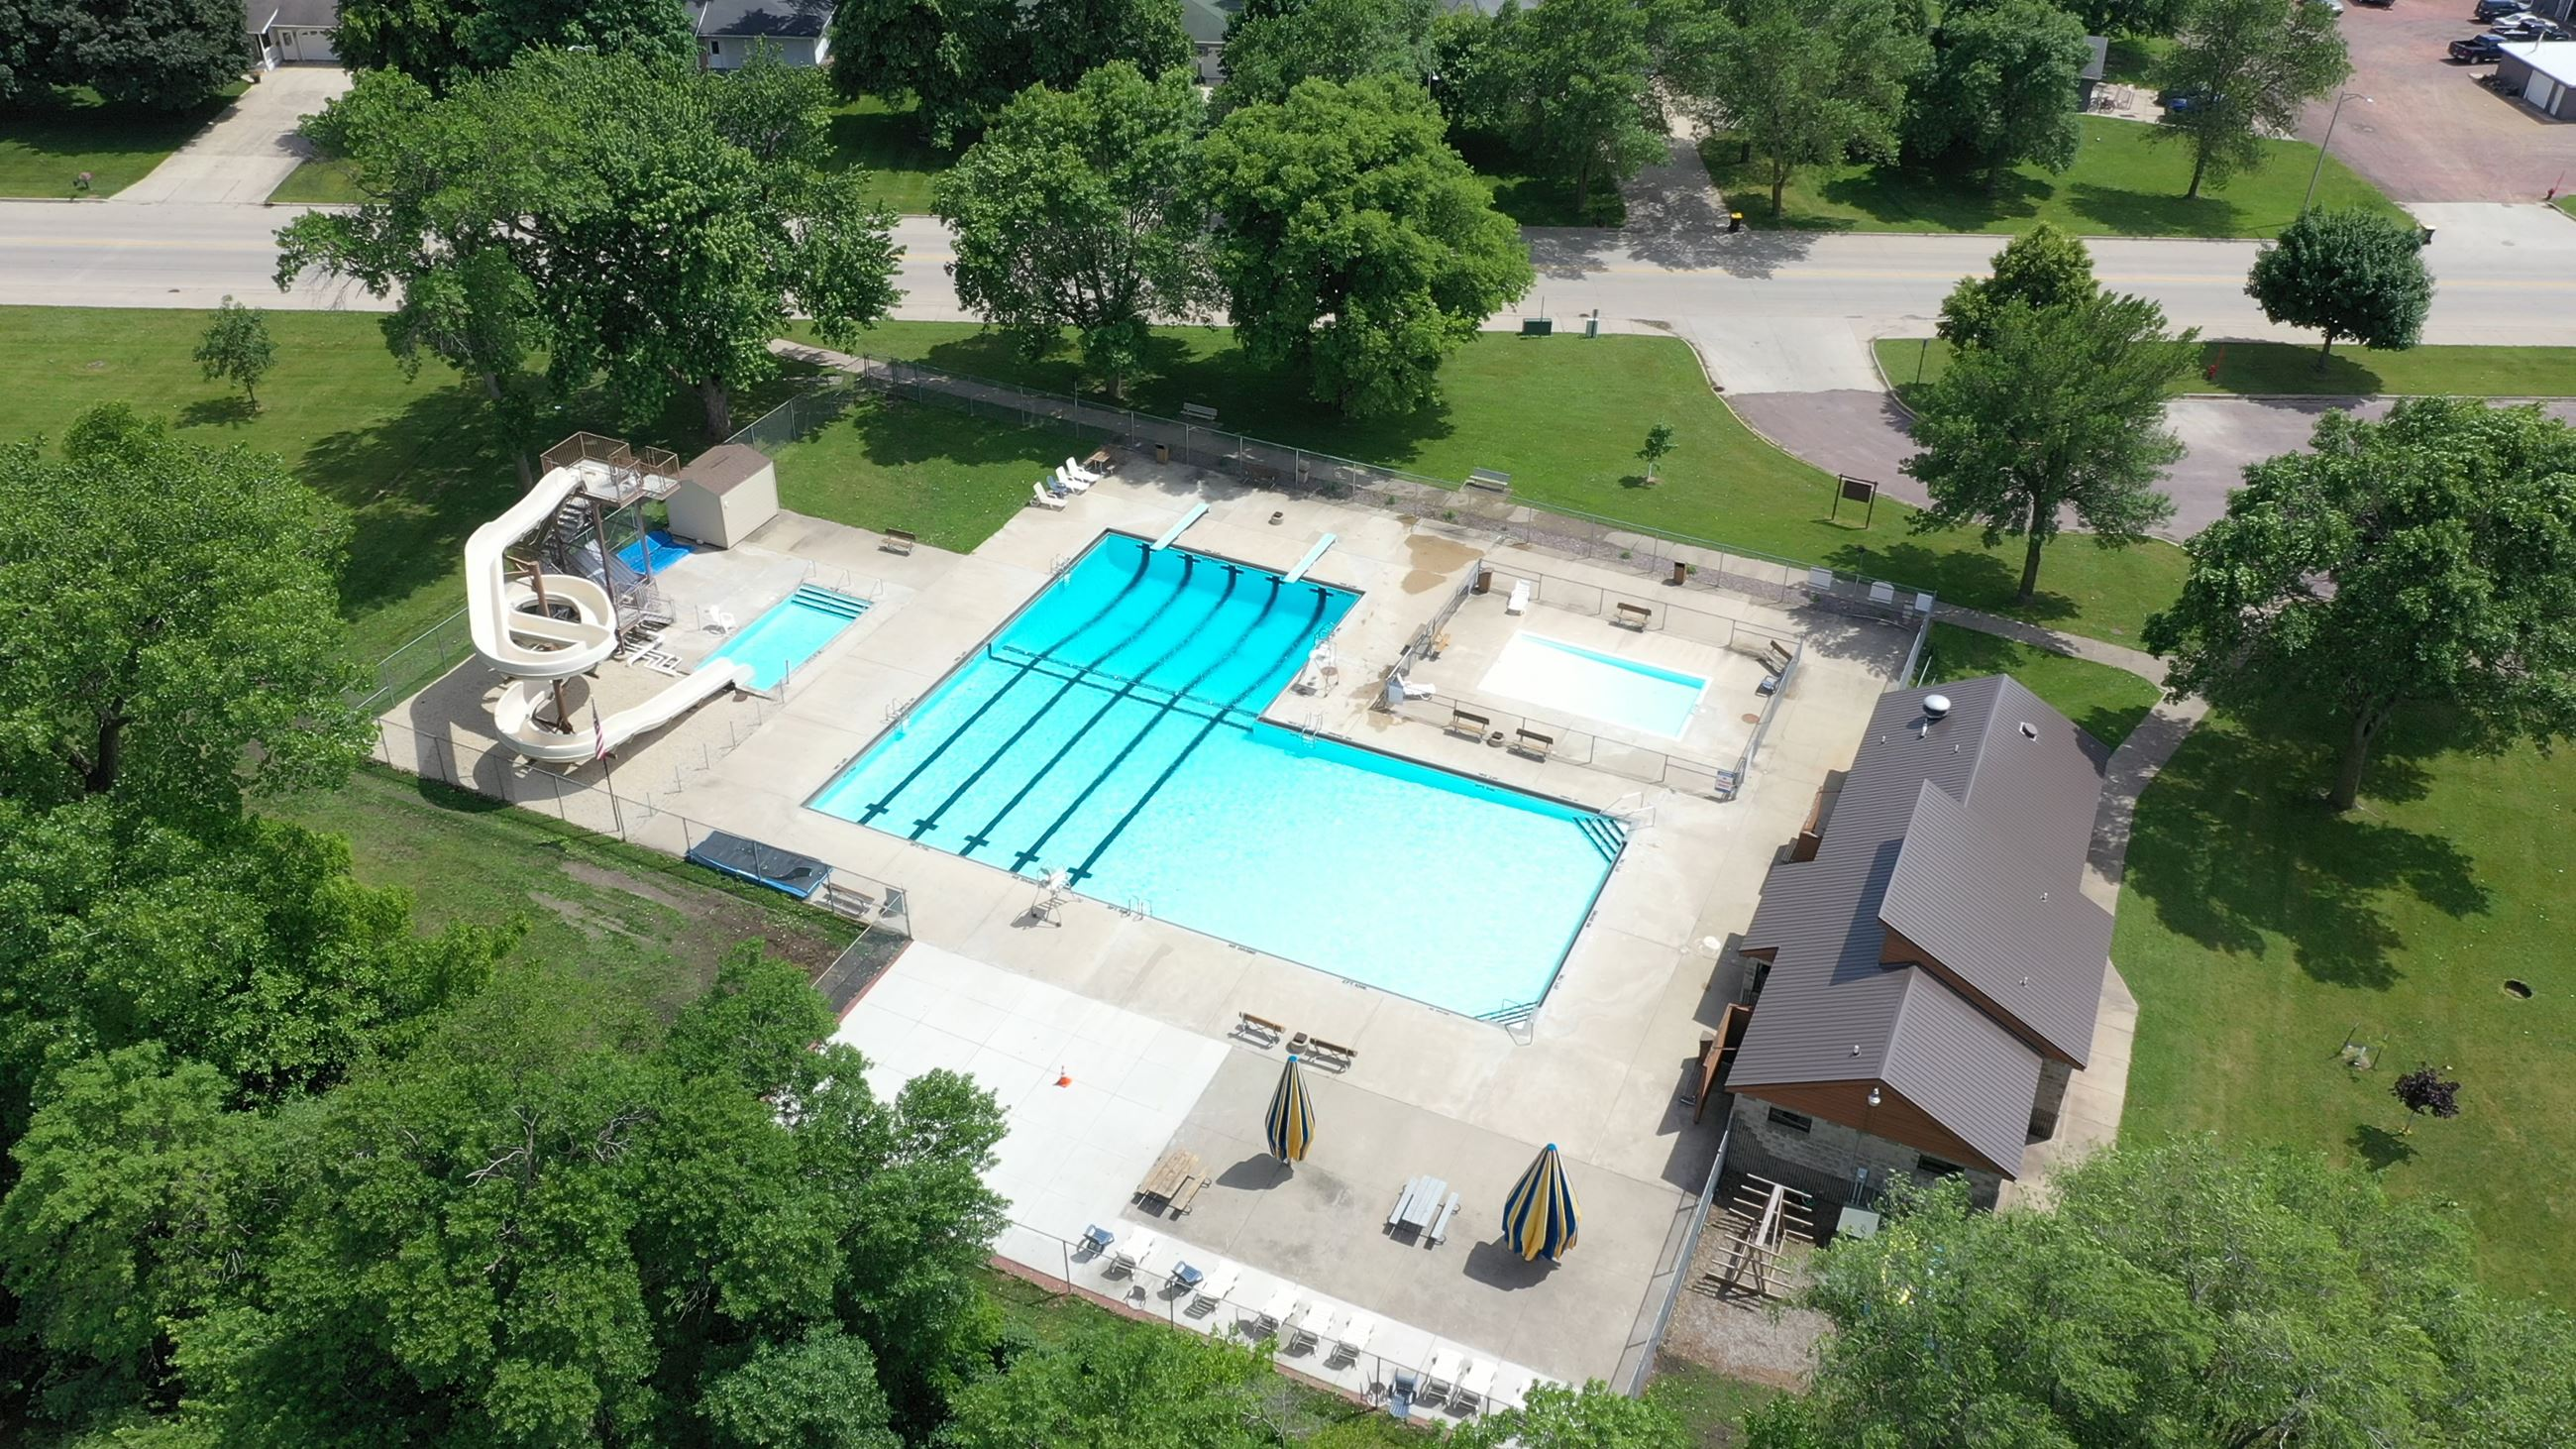 Aerial photo of outdoor pool